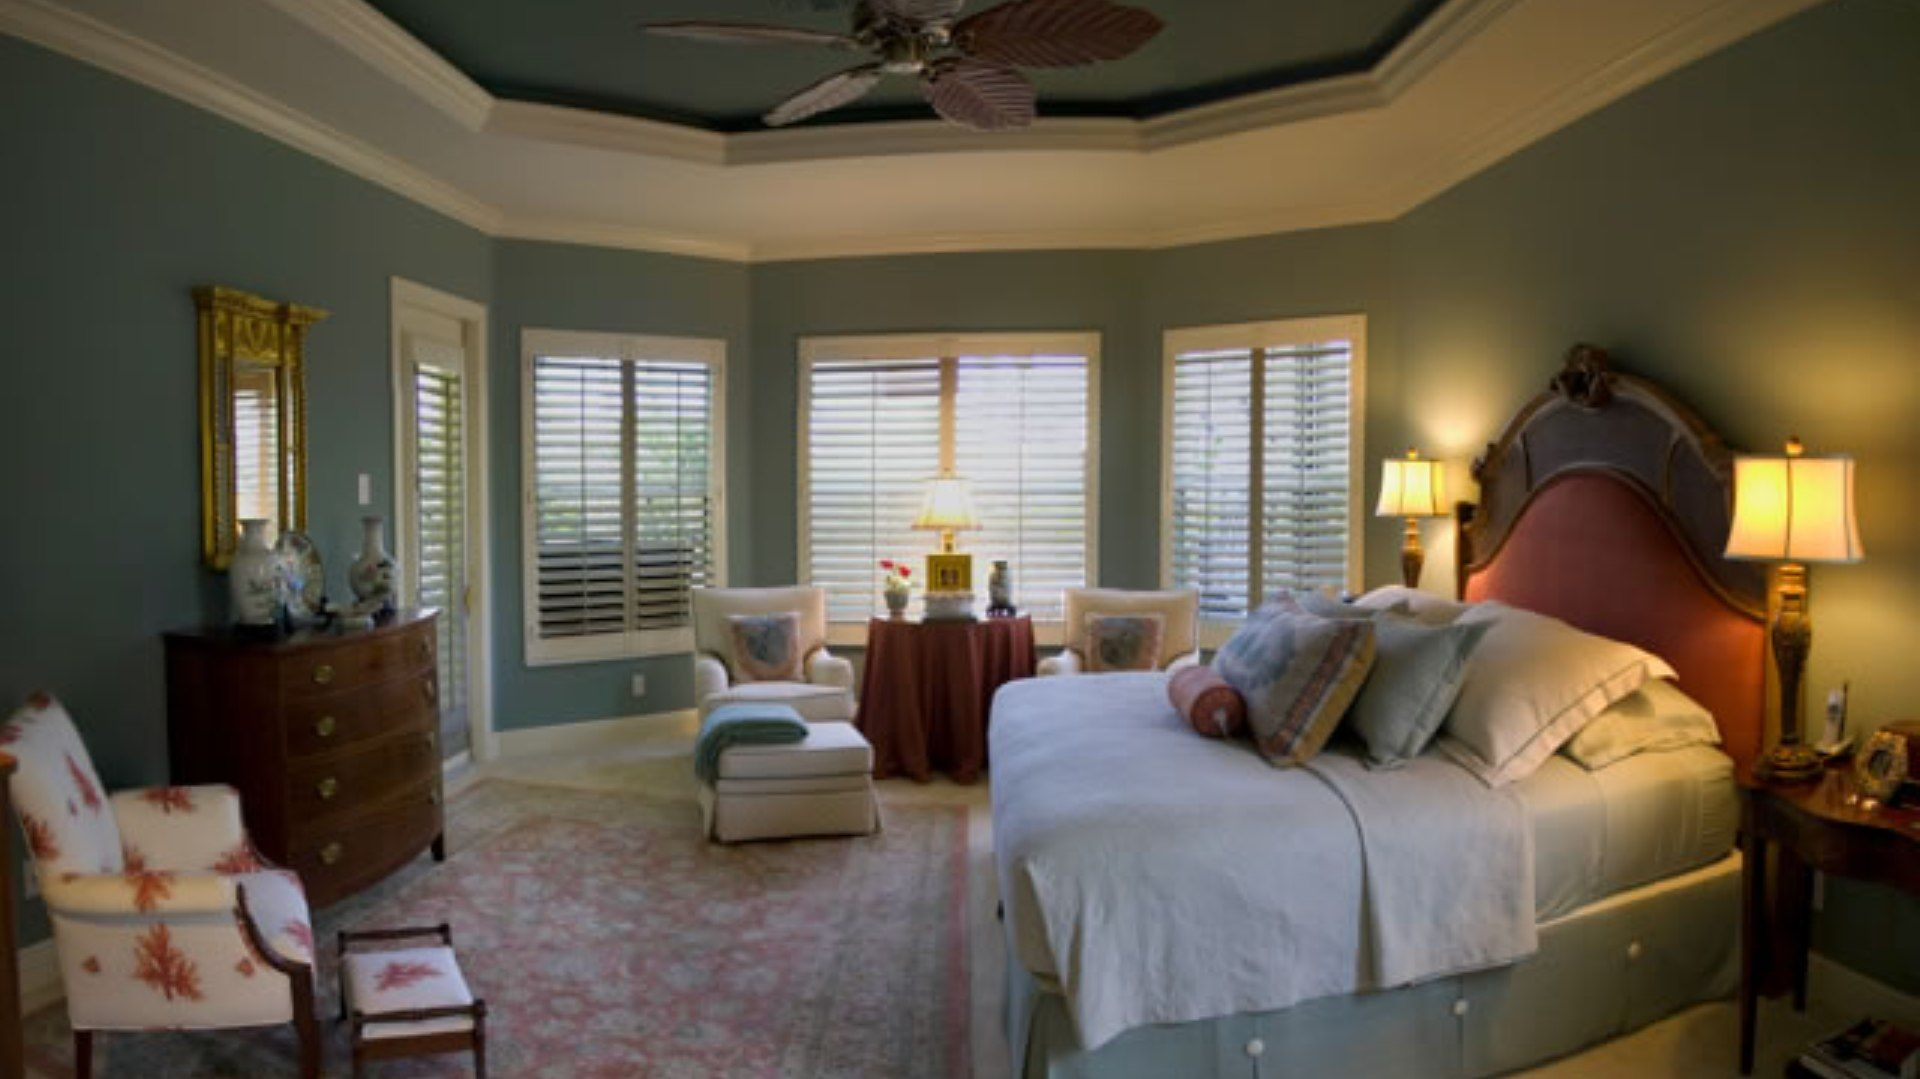 Feather Your Nest Interiors Is Located In Naples FL